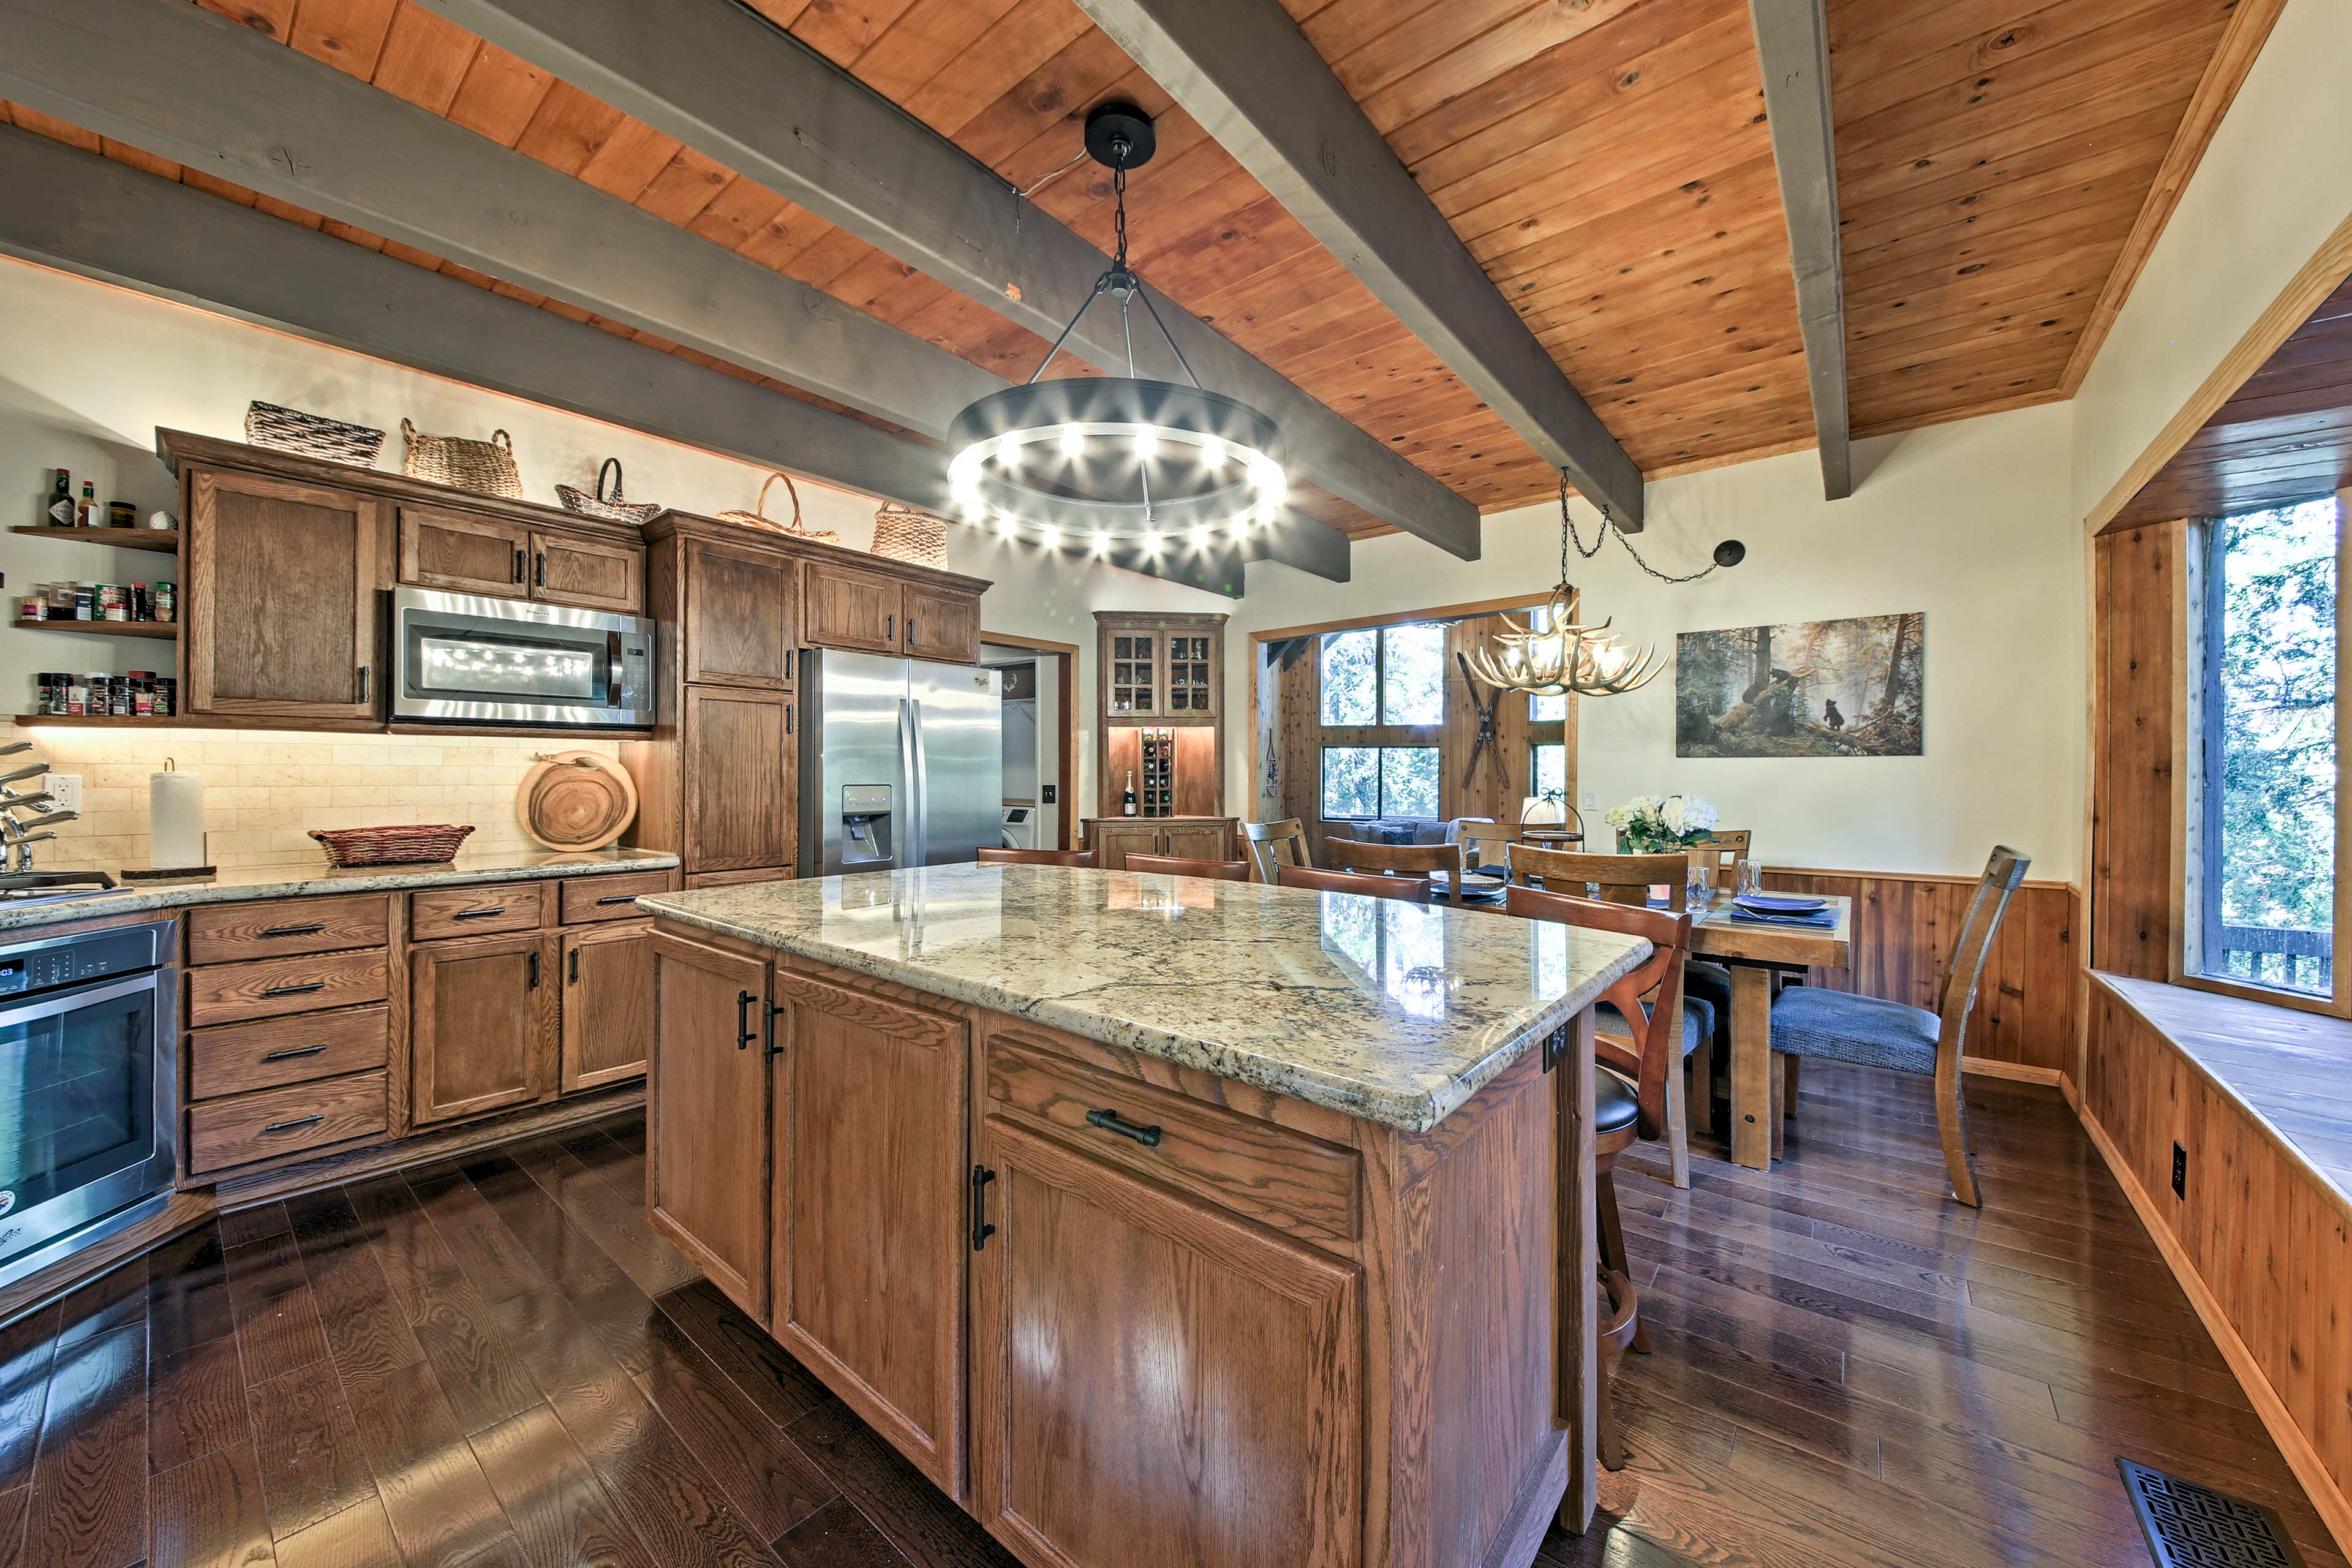 The kitchen features extended counters and a spacious bay window.